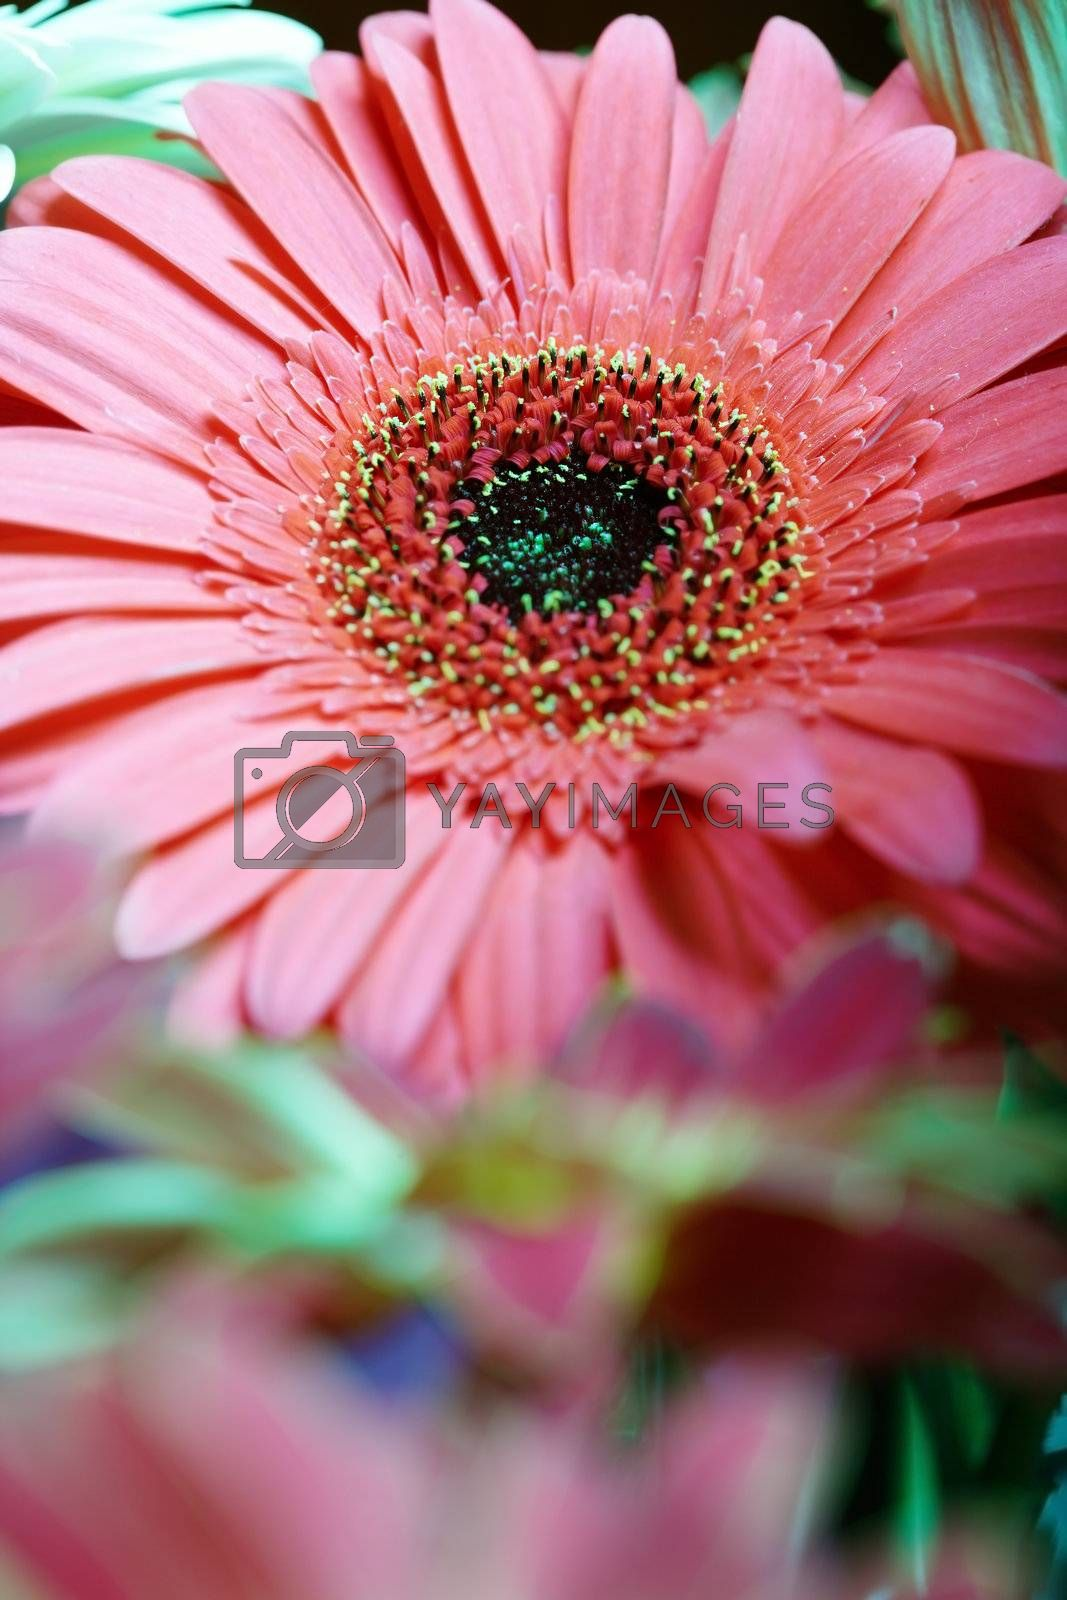 Close-up photo of the red chrysanthemum. Natural light and colors